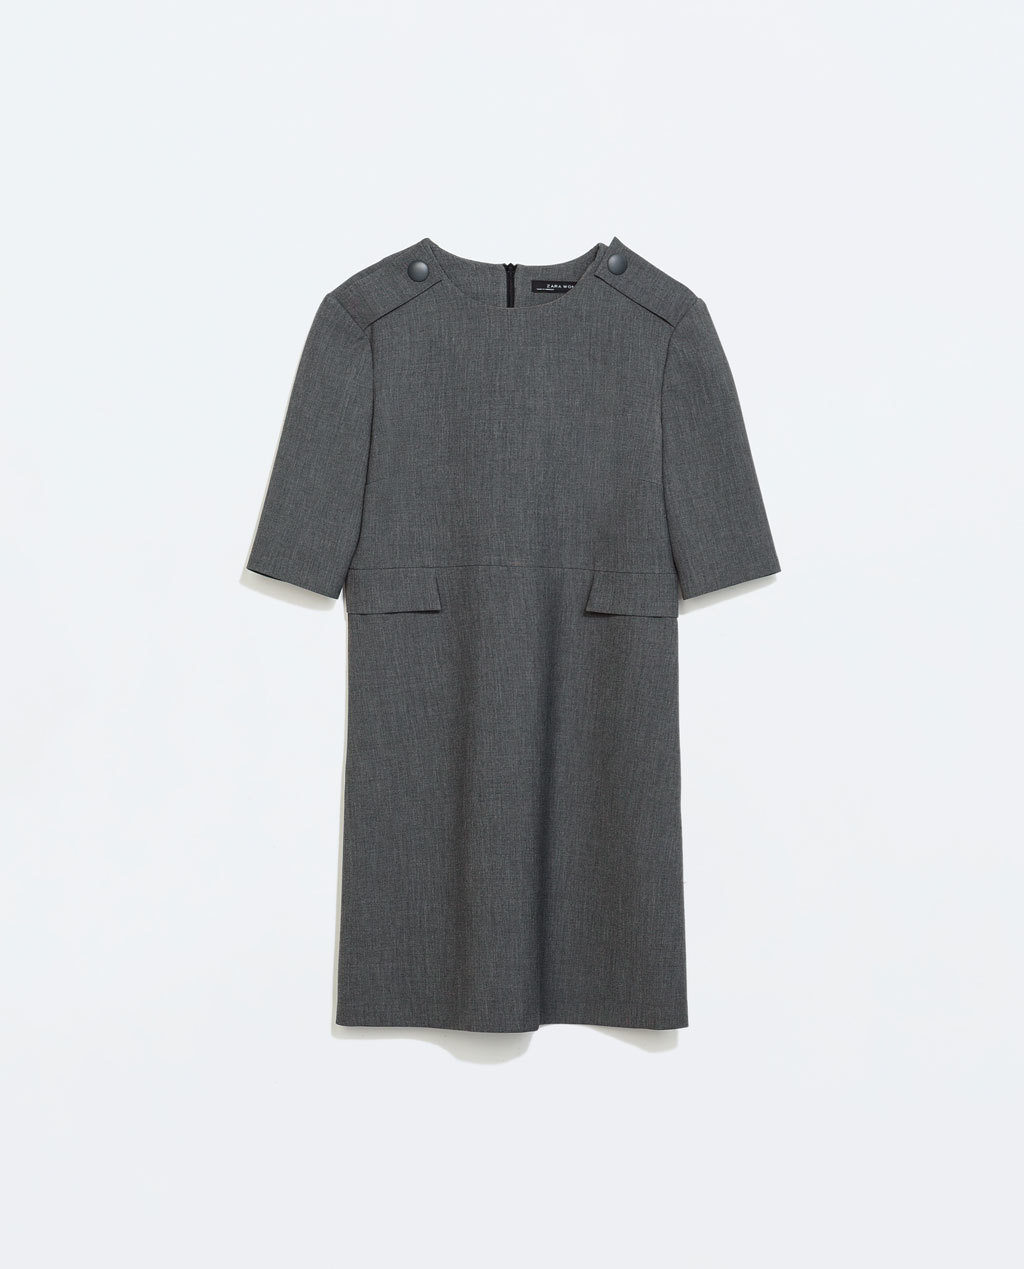 Dress With Flap Pockets - style: shift; length: mid thigh; neckline: round neck; pattern: plain; shoulder detail: obvious epaulette; predominant colour: charcoal; occasions: casual, work, creative work; fit: straight cut; fibres: polyester/polyamide - stretch; sleeve length: short sleeve; sleeve style: standard; pattern type: fabric; texture group: woven light midweight; season: a/w 2014; wardrobe: highlight